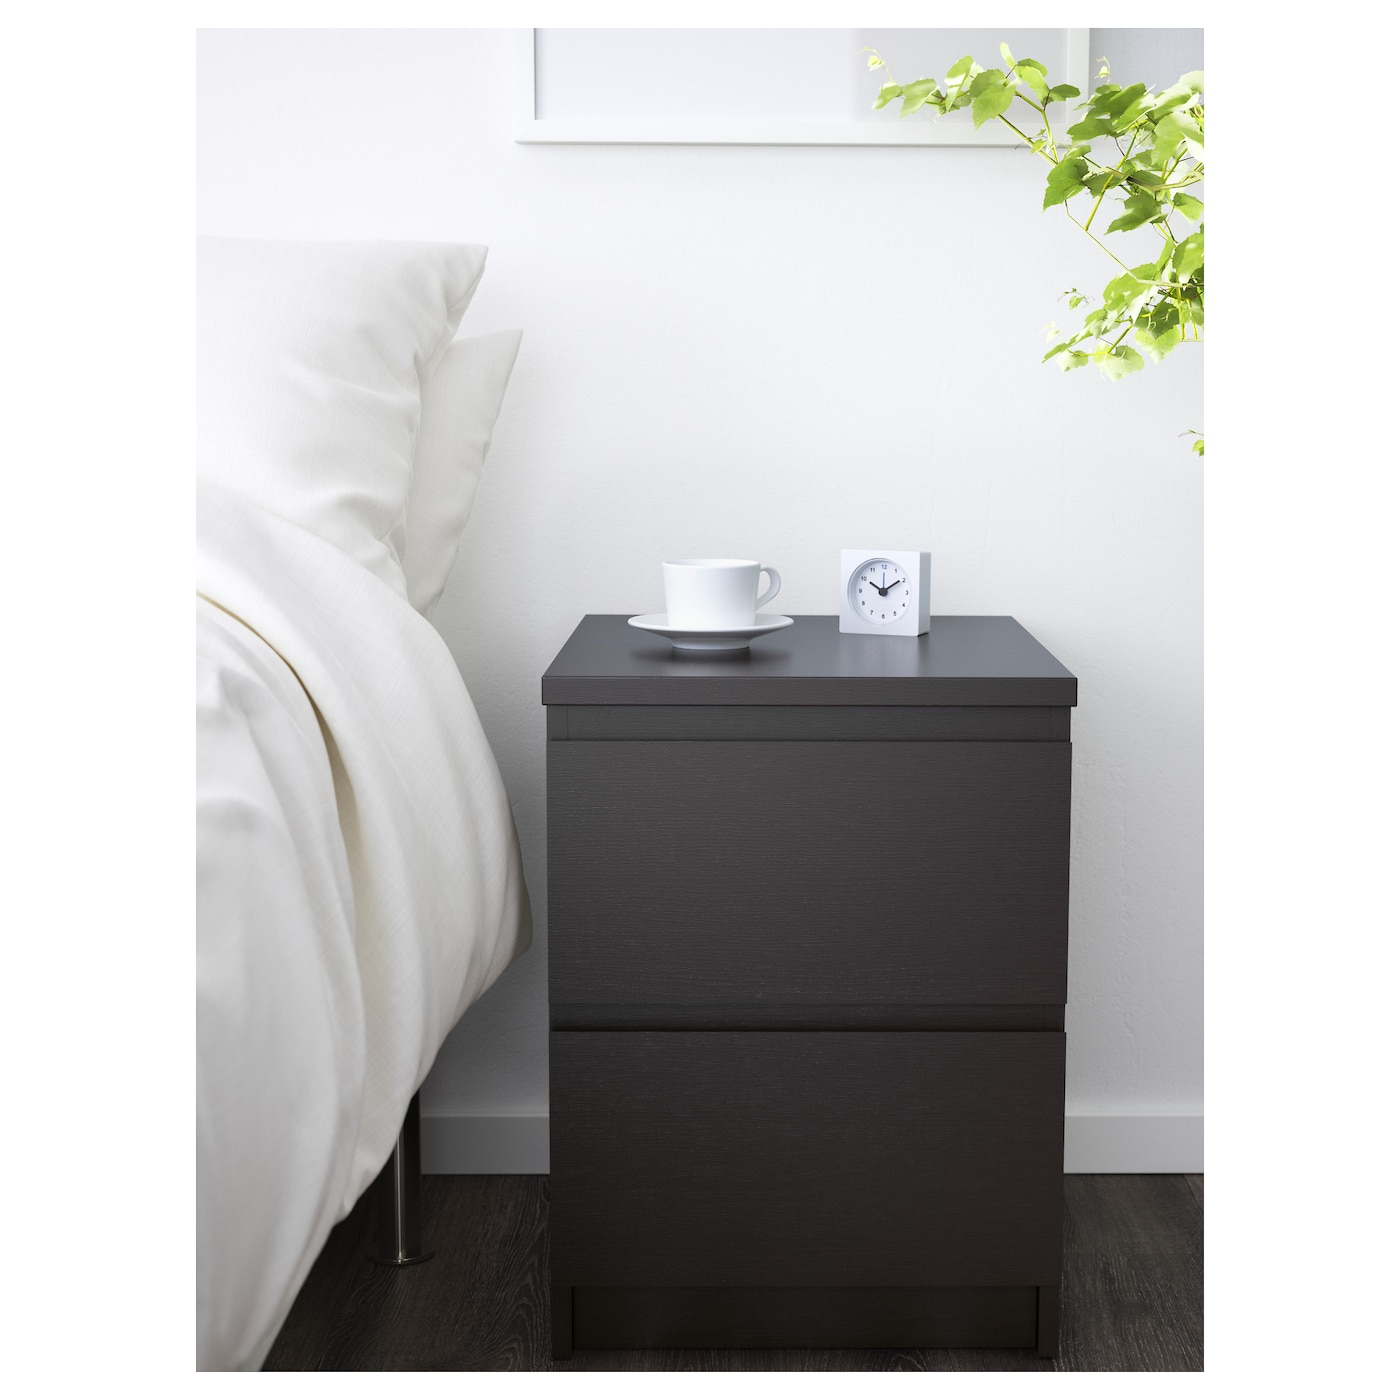 Ikea Malm Chest Of 2 Drawers Can Also Be Used As A Bedside Table